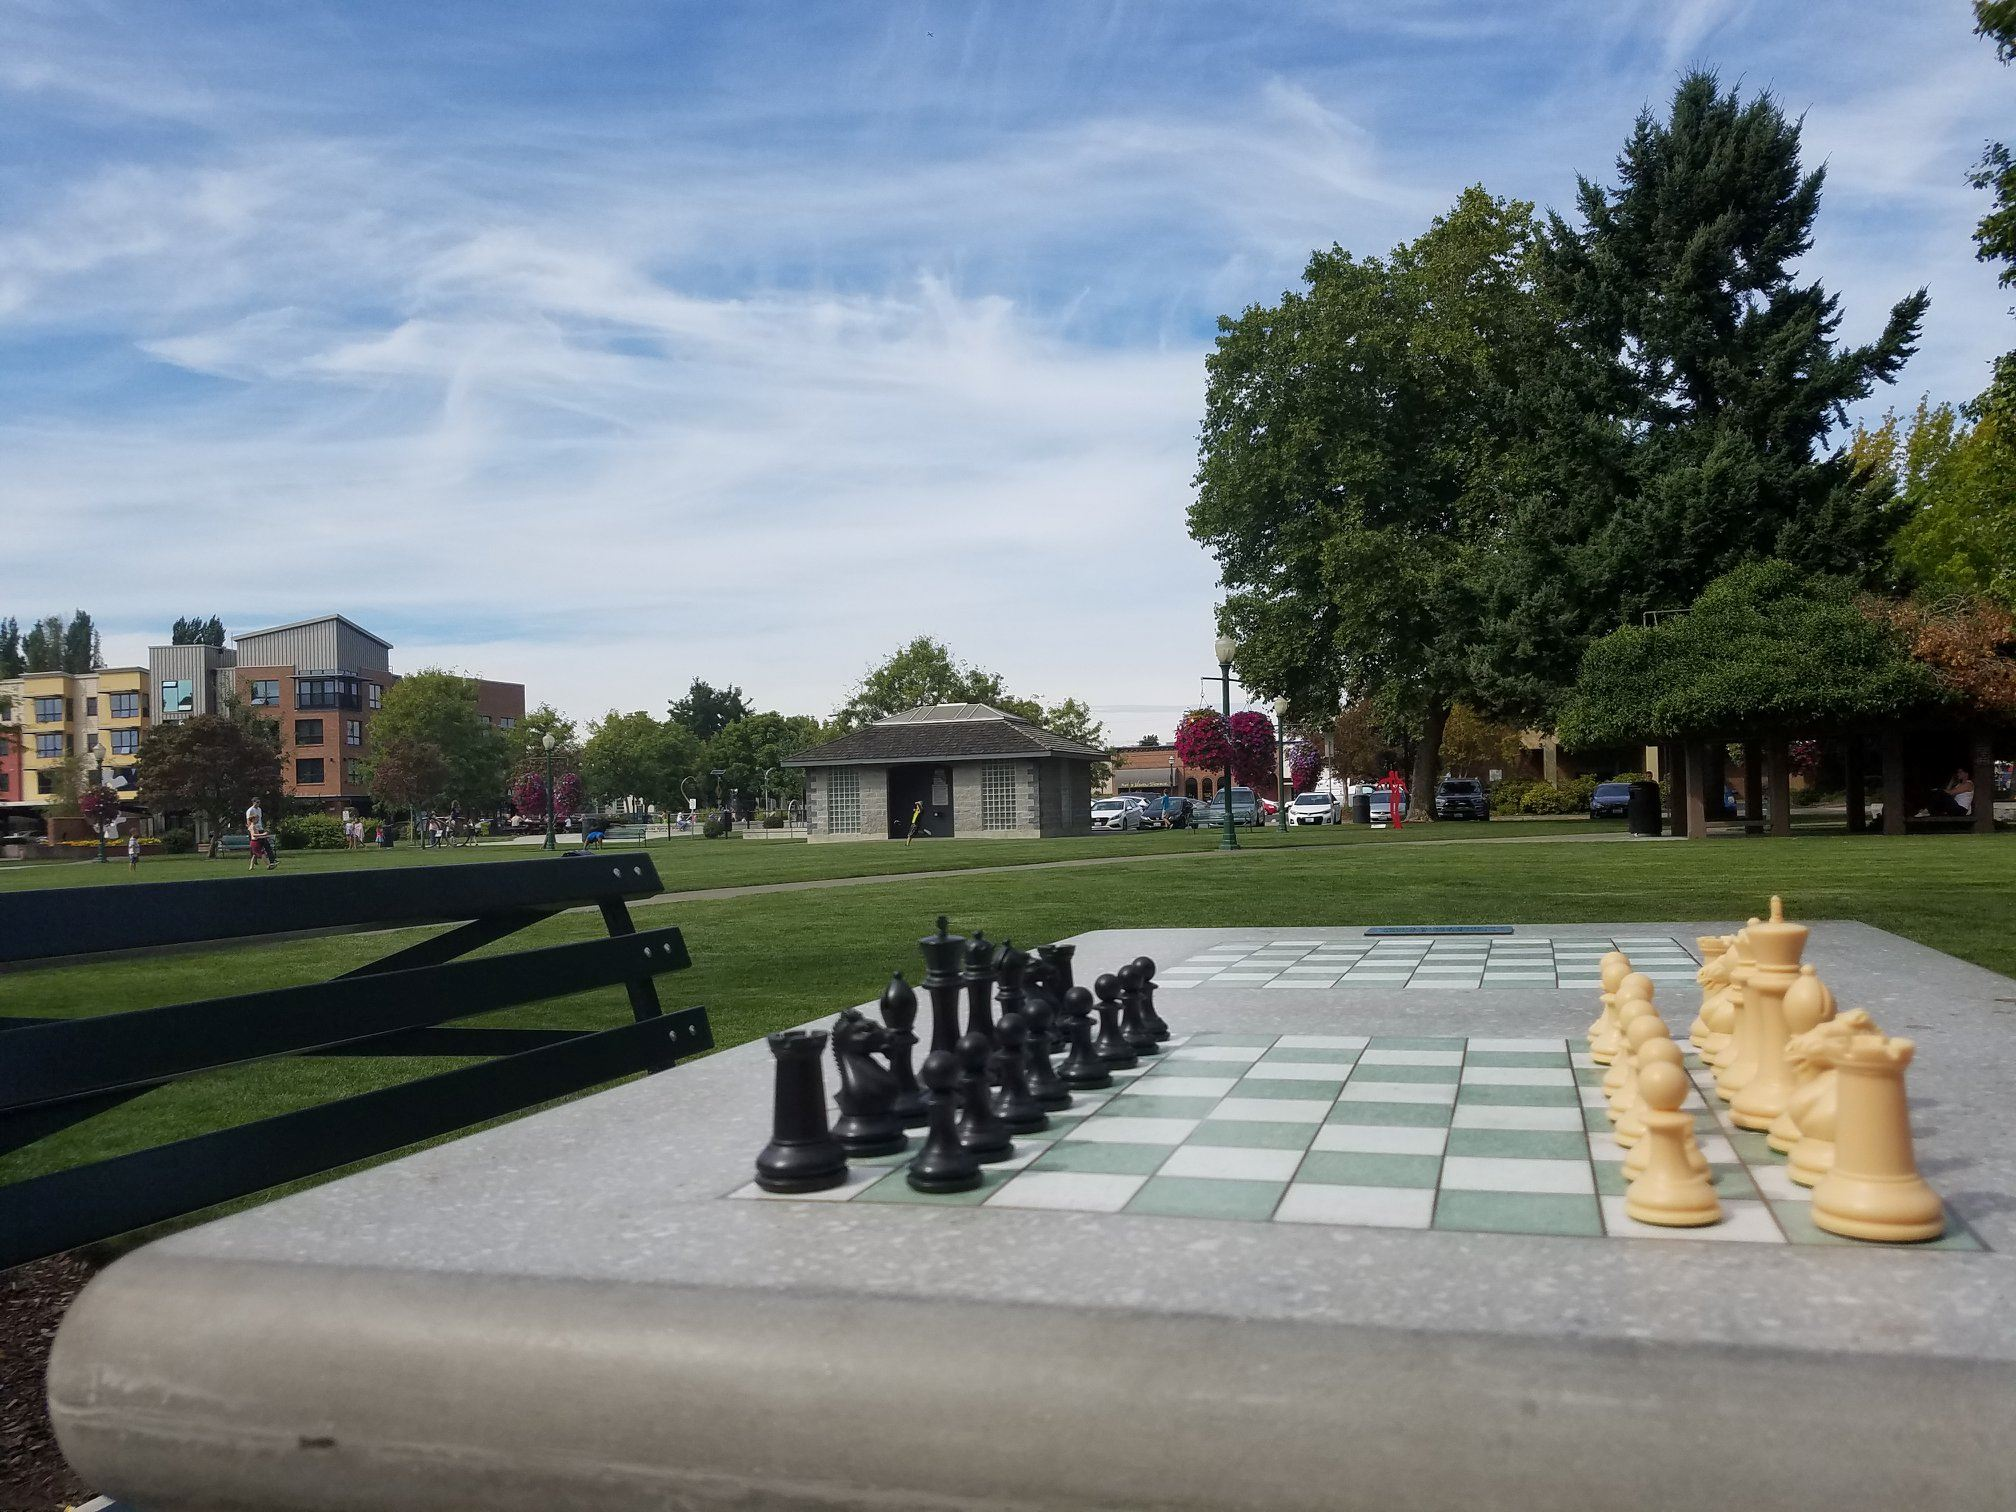 Chess tables set up